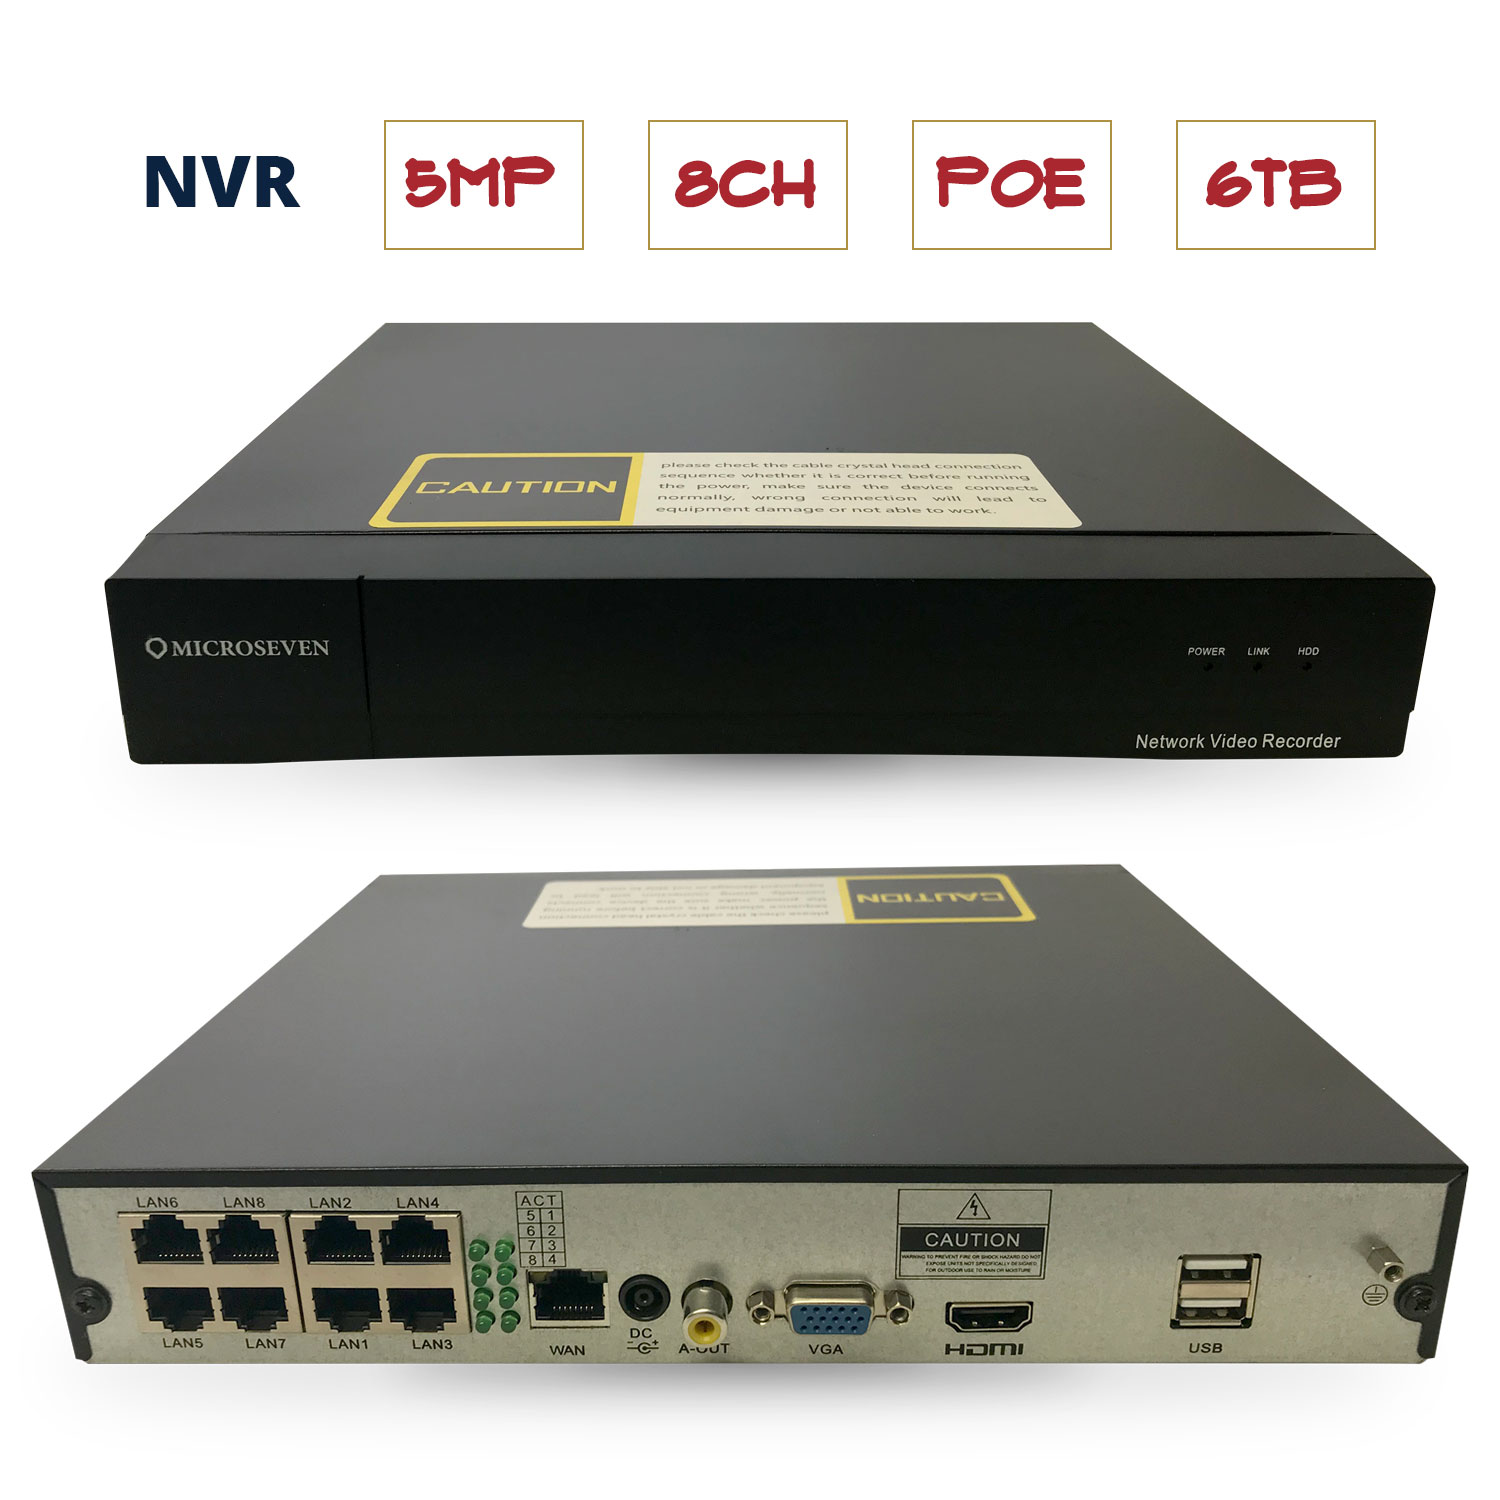 Microseven 5MP 8-Channel PoE NVR H.265 Security Network Video Recorder-Supports Recording 8CH 5MP/4MP/3MP/2MP IP Cameras,Power Over Ethernet, Supports up to 6TB HDD (Not Included), Provides support for third party brand ONVIF compliant IP Cameras / M7NVR-5MP08A